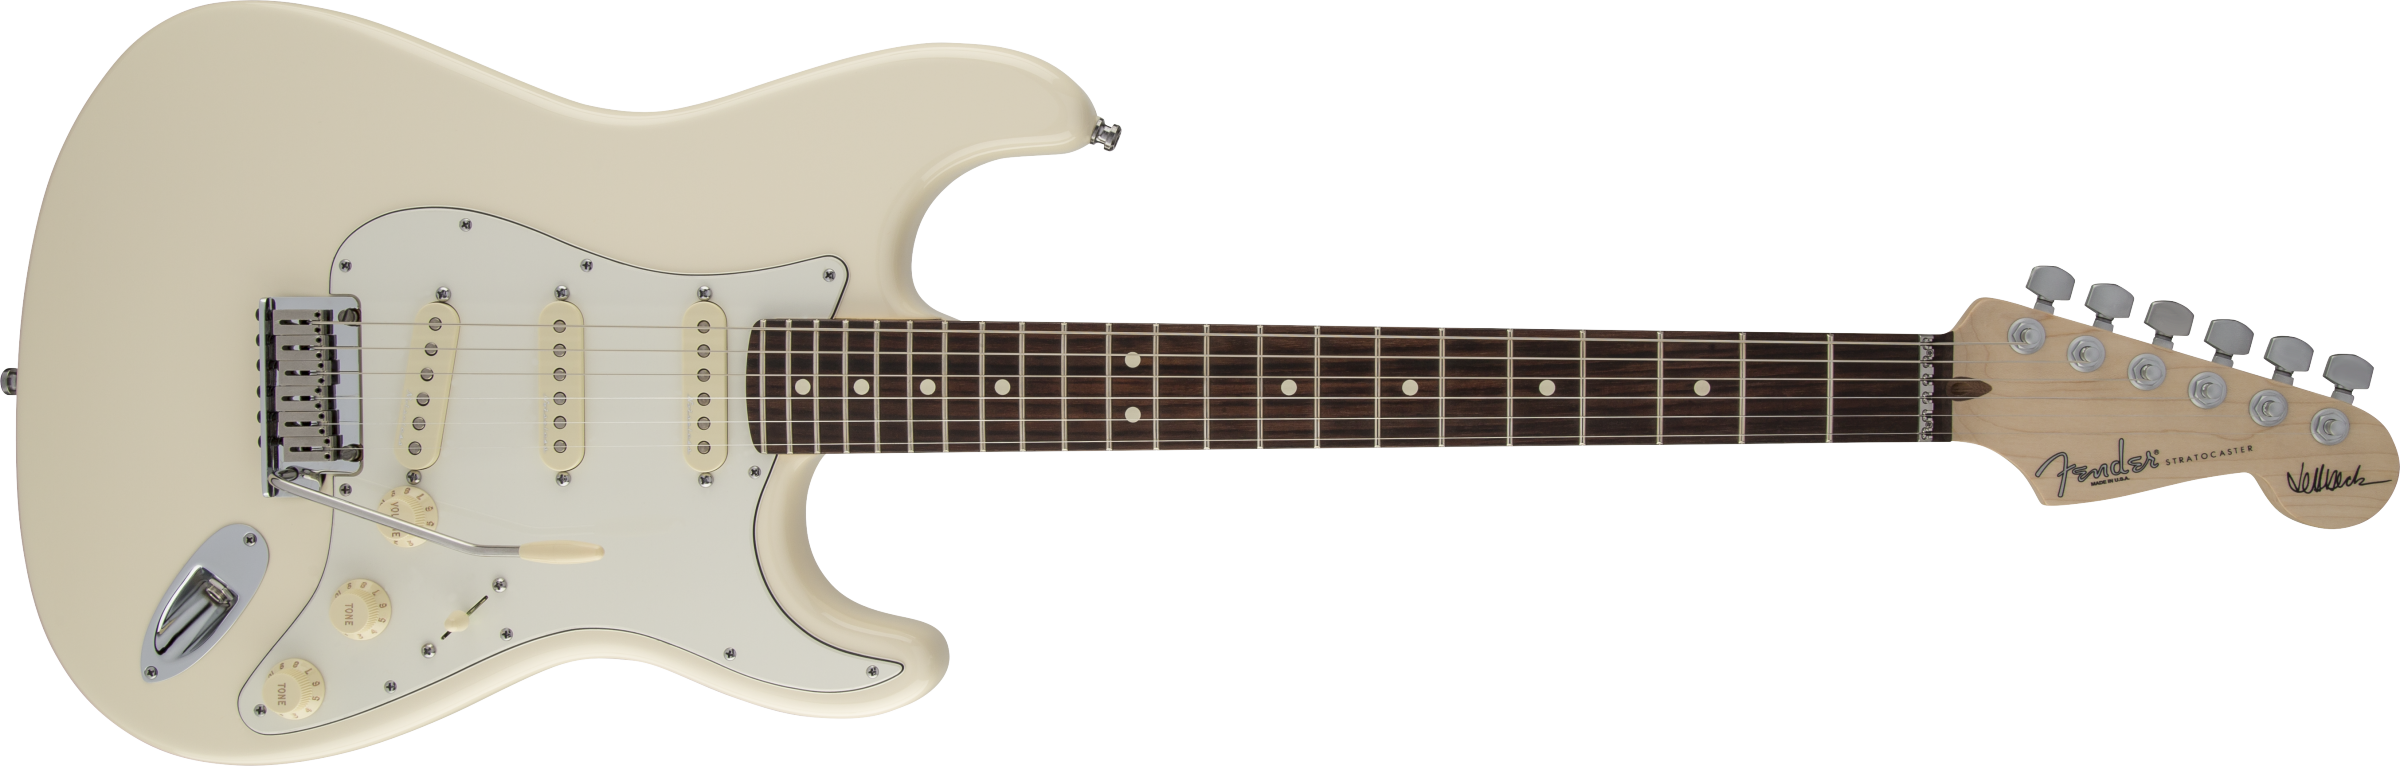 FENDER Jeff Beck Stratocaster, Rosewood Fingerboard, Olympic White